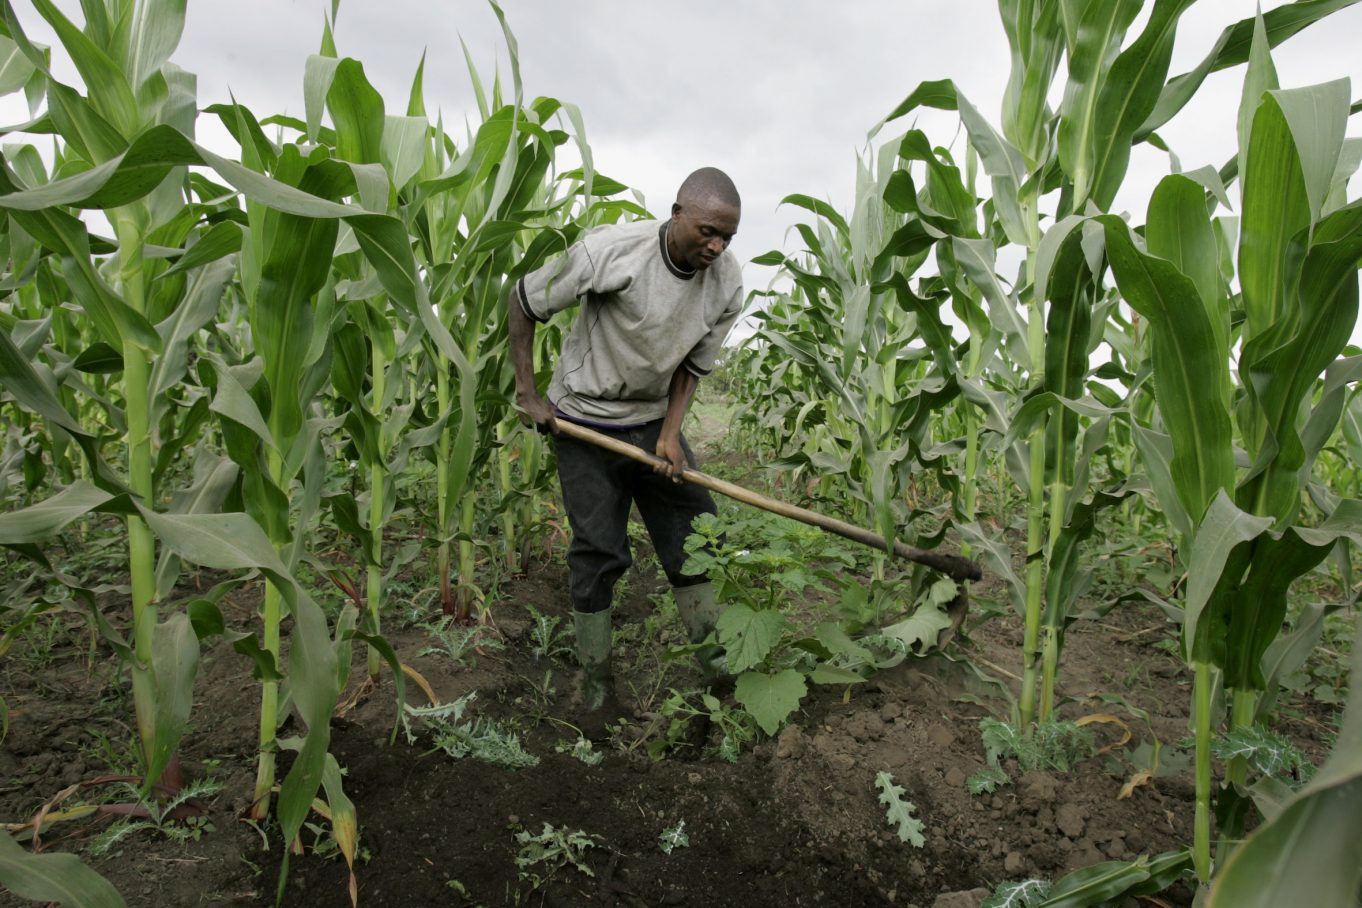 agriculture in nigeria Agriculture has undoubtedly become the most important sub-sector in the nigerian economy, next to petroleum the agriculture sector employs about 70 percent of the workforce, while accounting for slightly more than 40 percent of gross domestic product.